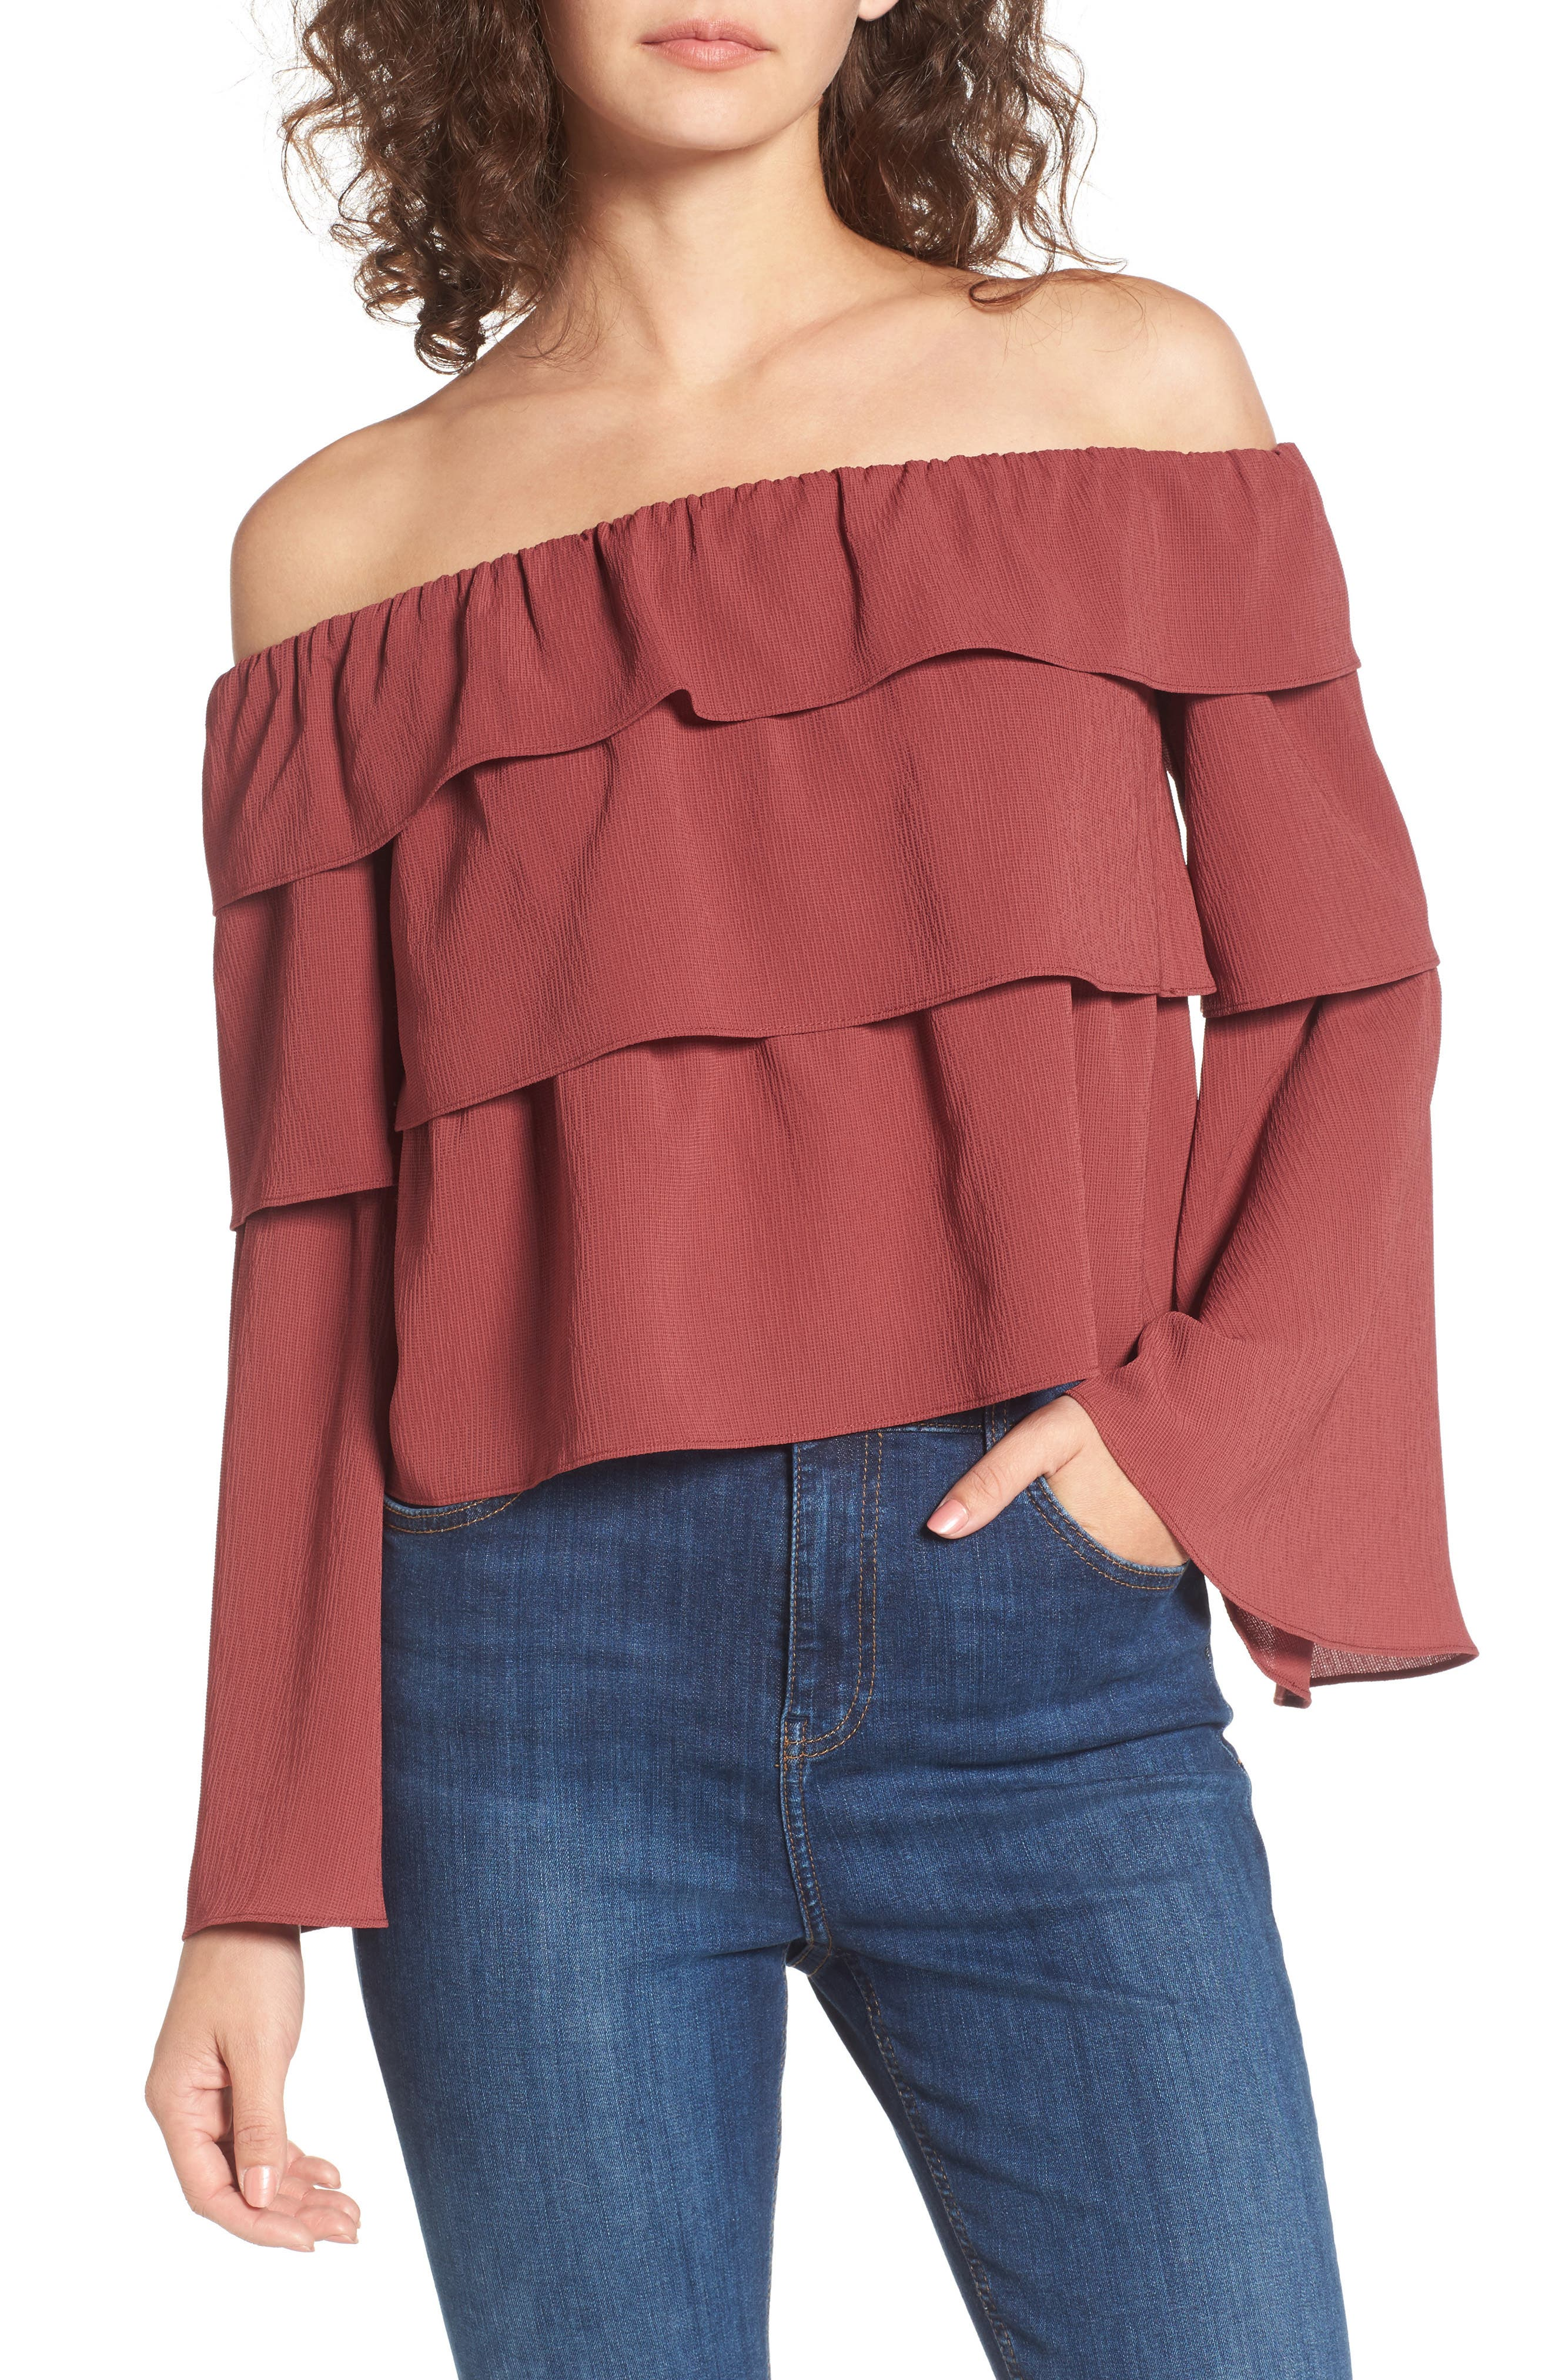 Main Image - STOREE Ruffle Off the Shoulder Top